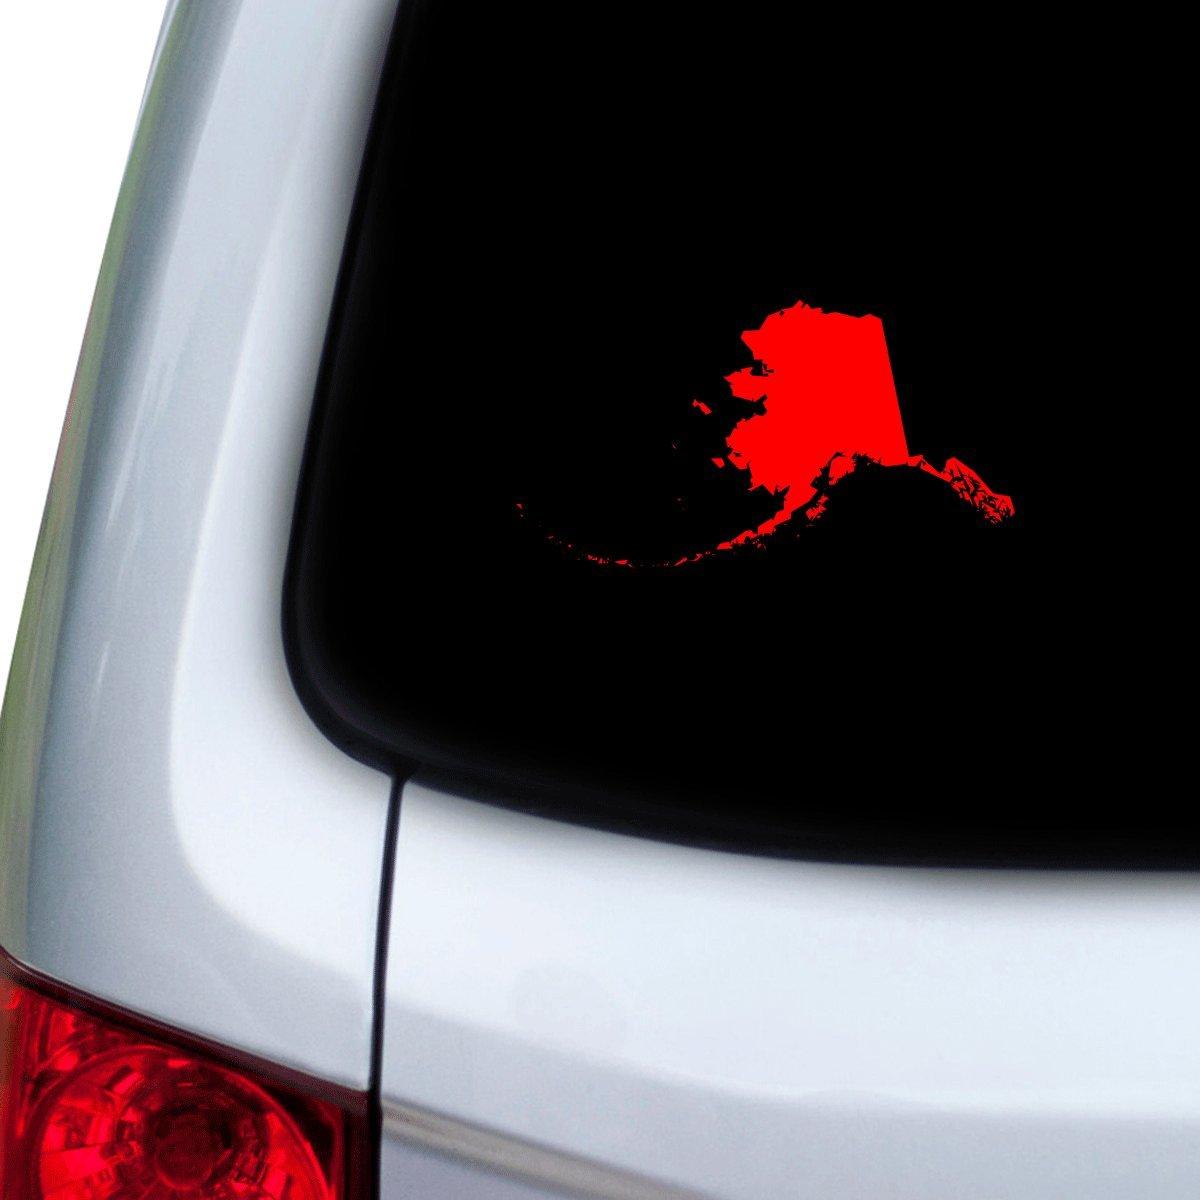 Hoods Doors Red StickAny Car and Auto Decal Series Alaska AK Sticker for Windows